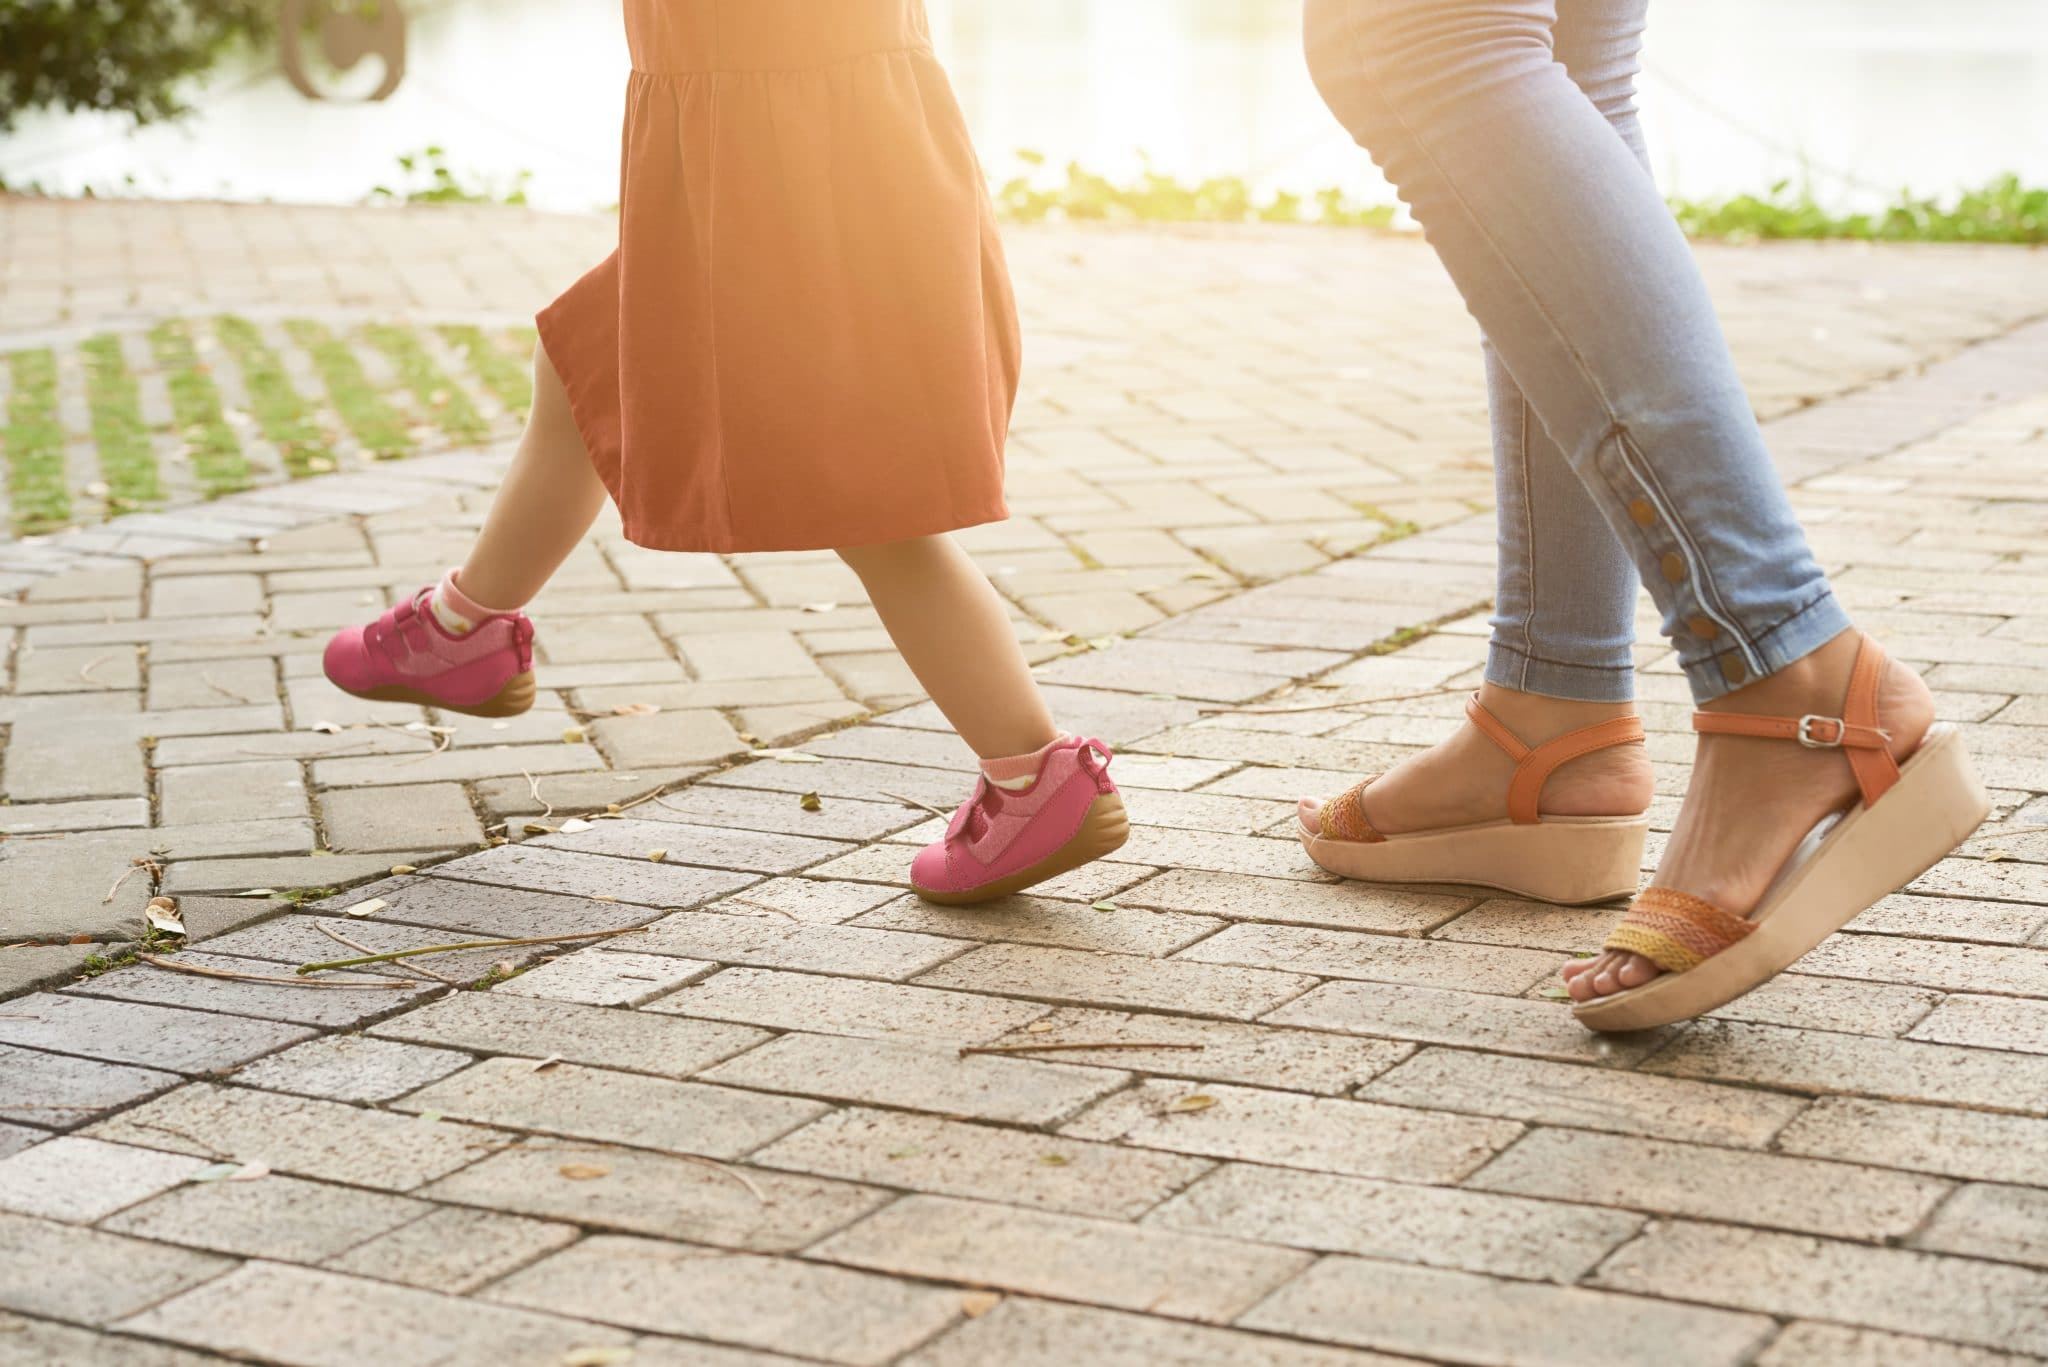 You can wear sneakers all the time and be done with it, but it's important to know that you don't have to be totally casual just because you're running after kids. It's actually possible to stay stylish and be comfortable too. So here are some stylish summer shoes for moms to wear while chasing your children.